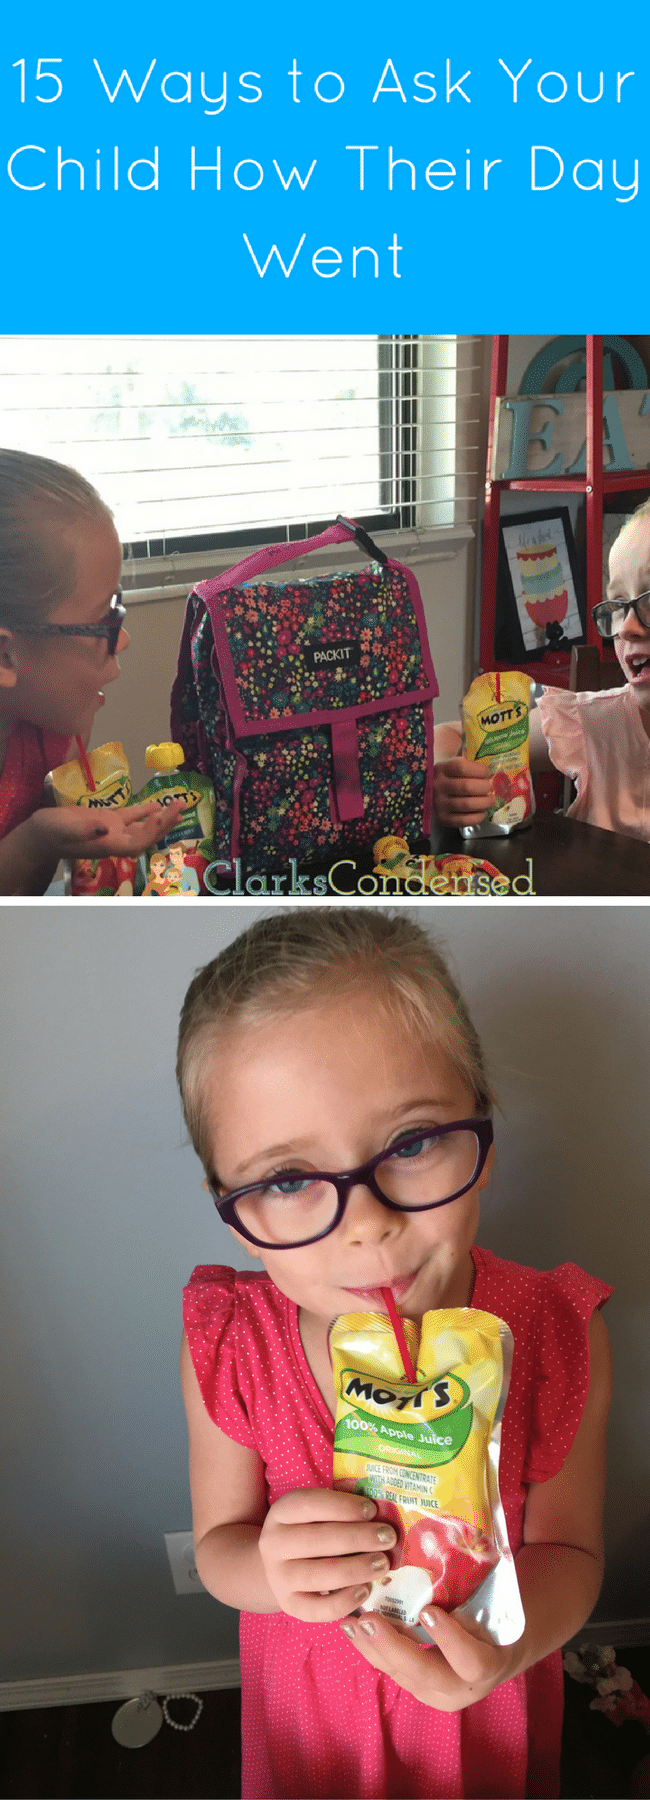 #StartStrongWithMotts #IC #ad Try delicious  NEW Mott's 100% Juice Pouches. They are so sweet and flavorful and perfect for an after school snack!  via @clarkscondensed